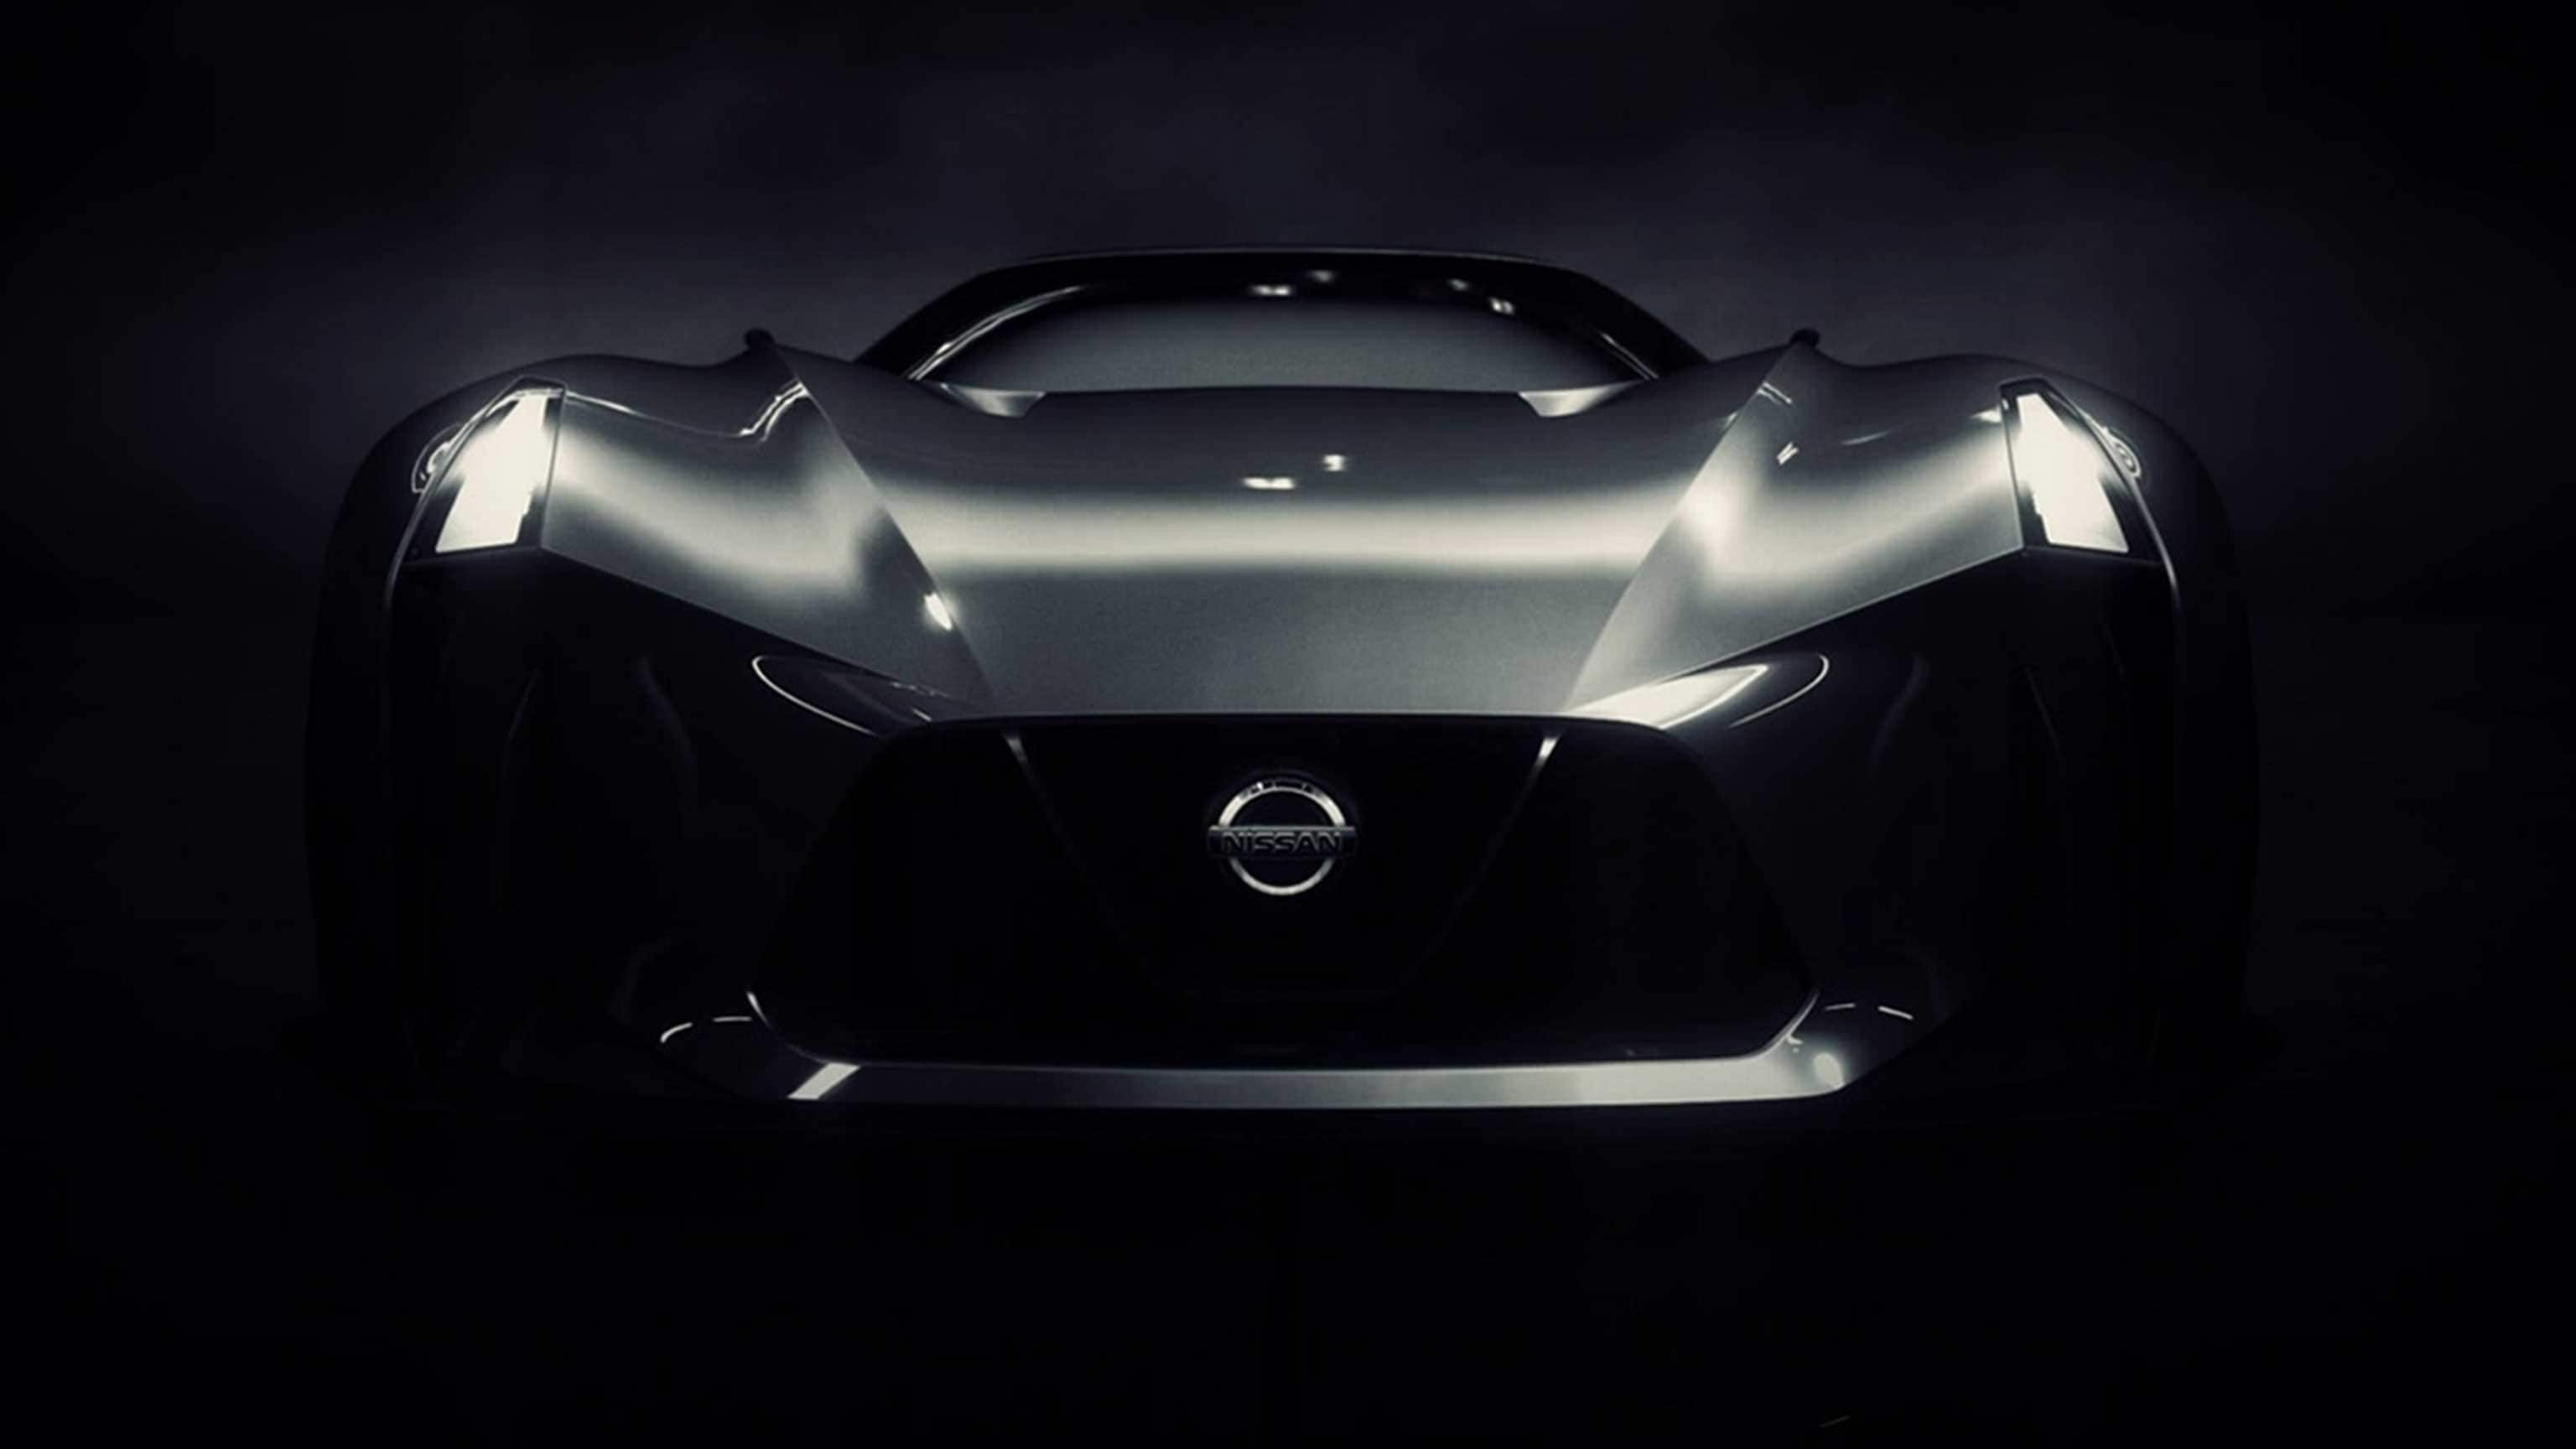 42 Concept of Nissan Turismo 2020 Ratings with Nissan Turismo 2020